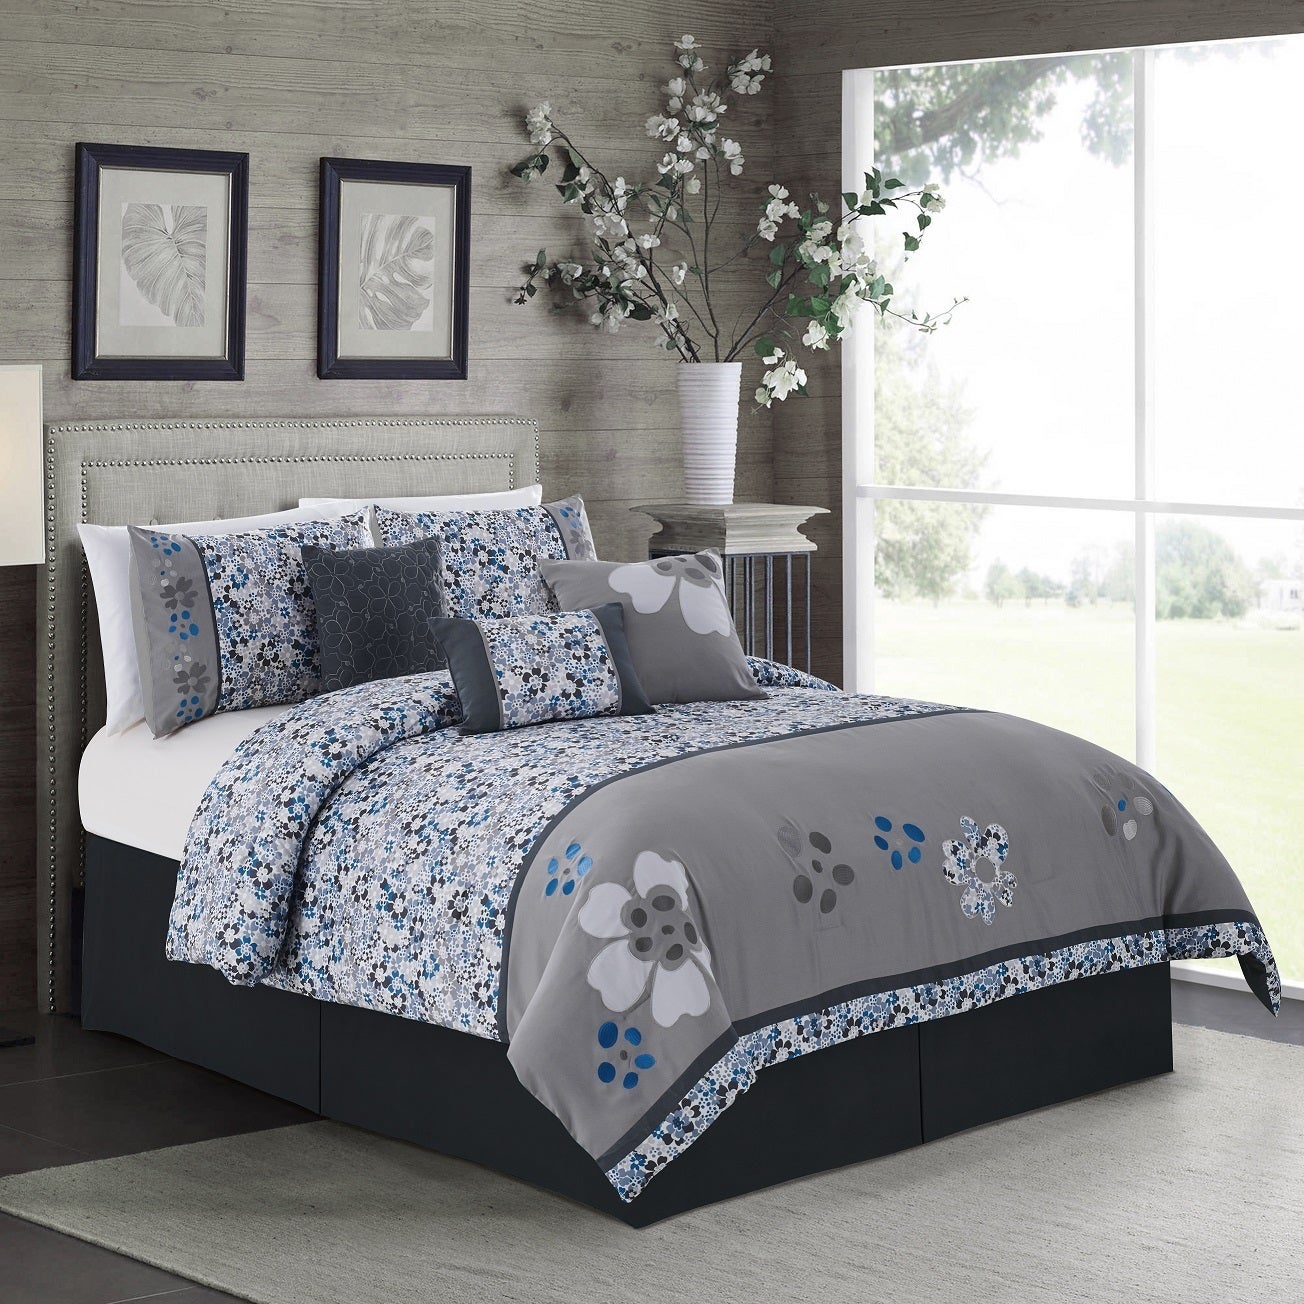 Elight Home Daisy Embroidered 7 Piece Comforter Set (King...